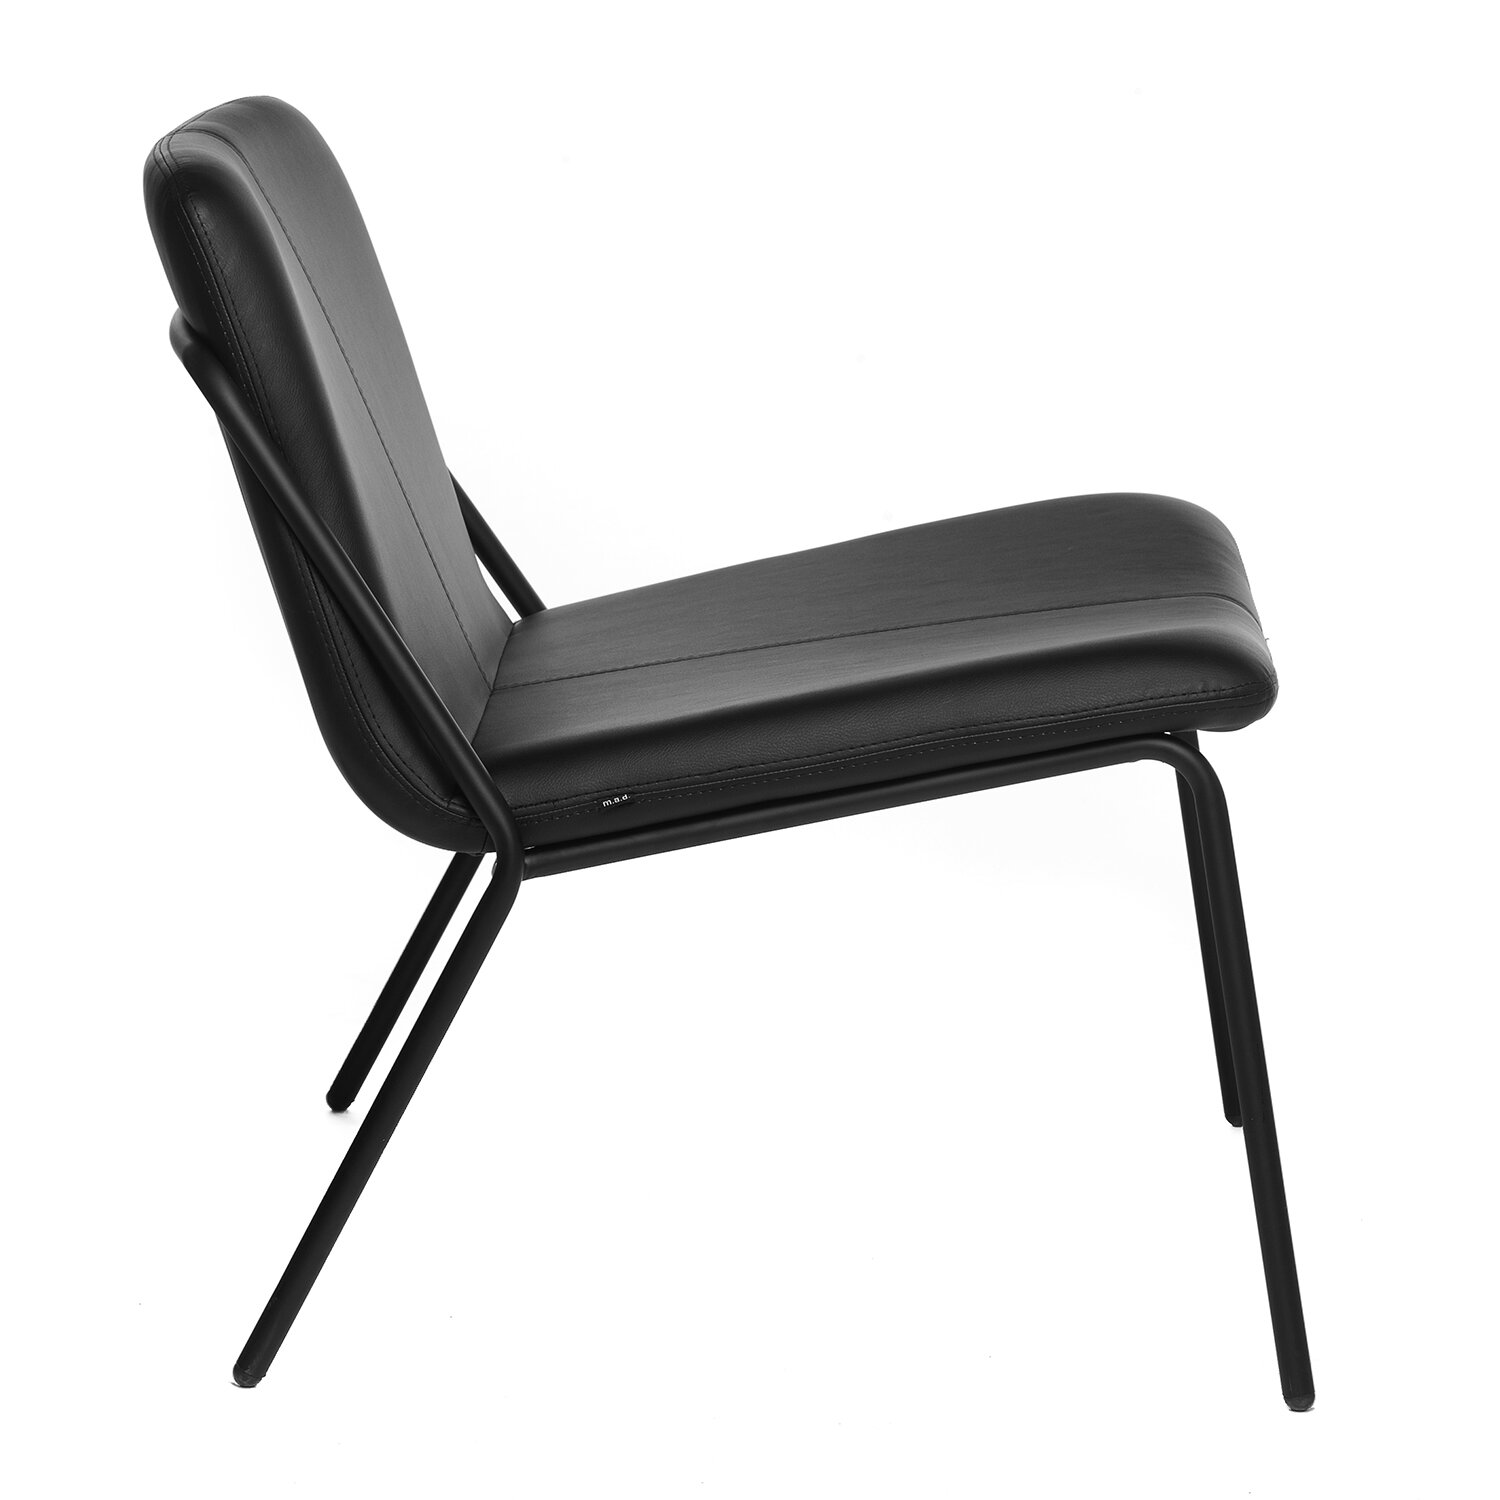 m a d Furniture Sling Lounge Chair